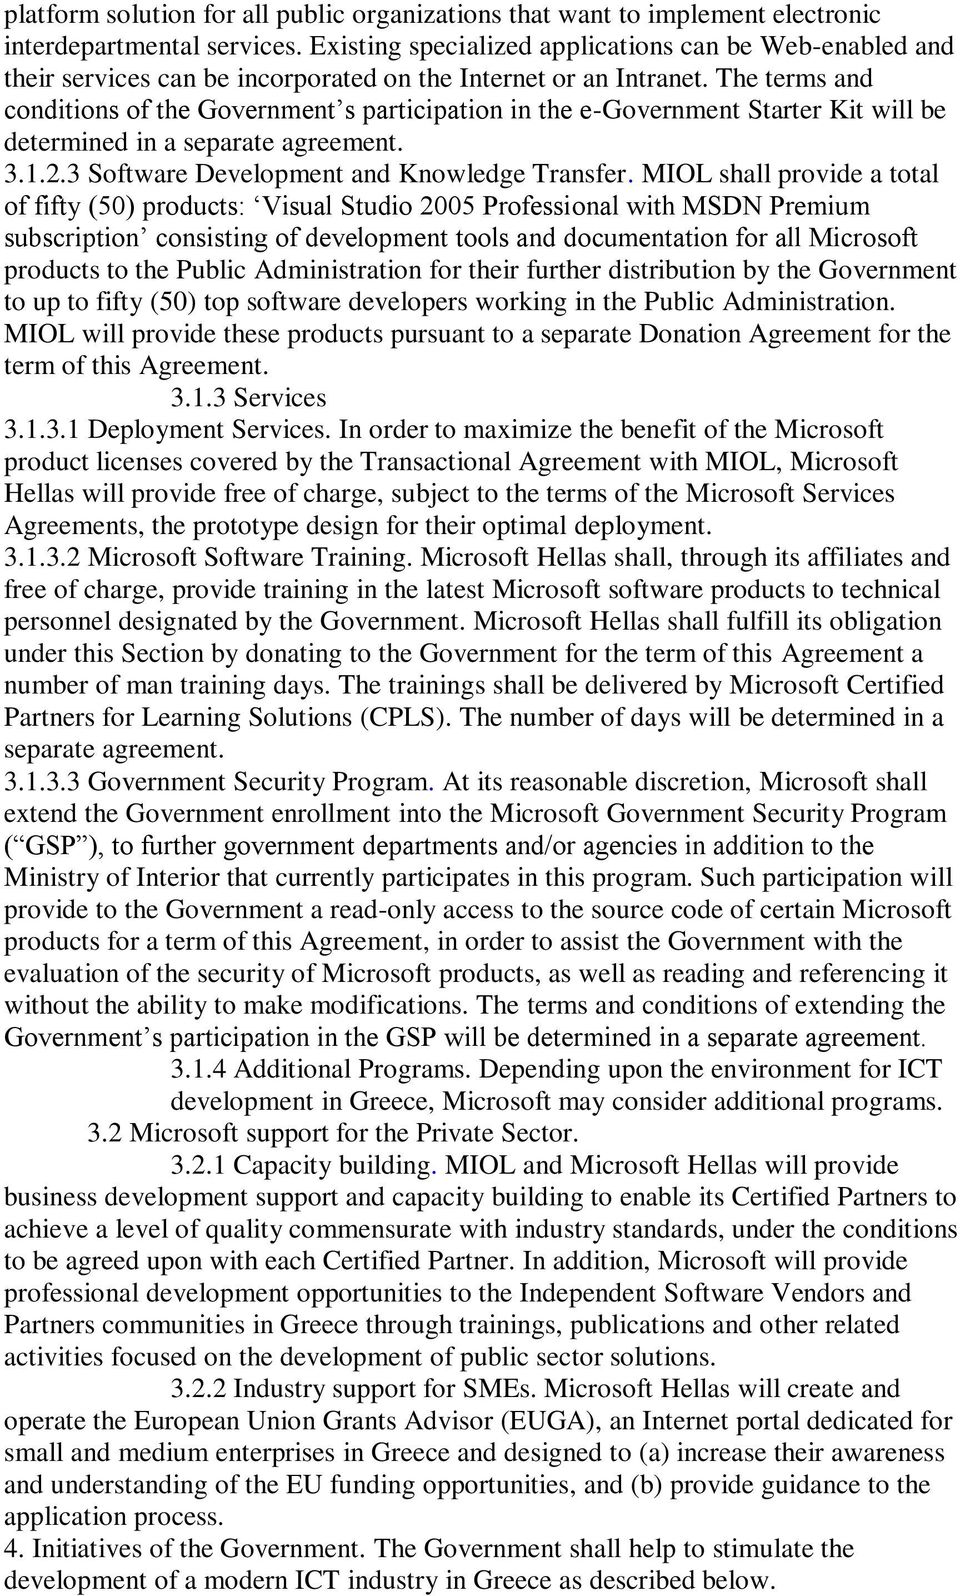 The terms and conditions of the Government s participation in the e-government Starter Kit will be determined in a separate agreement. 3.1.2.3 Software Development and Knowledge Transfer.